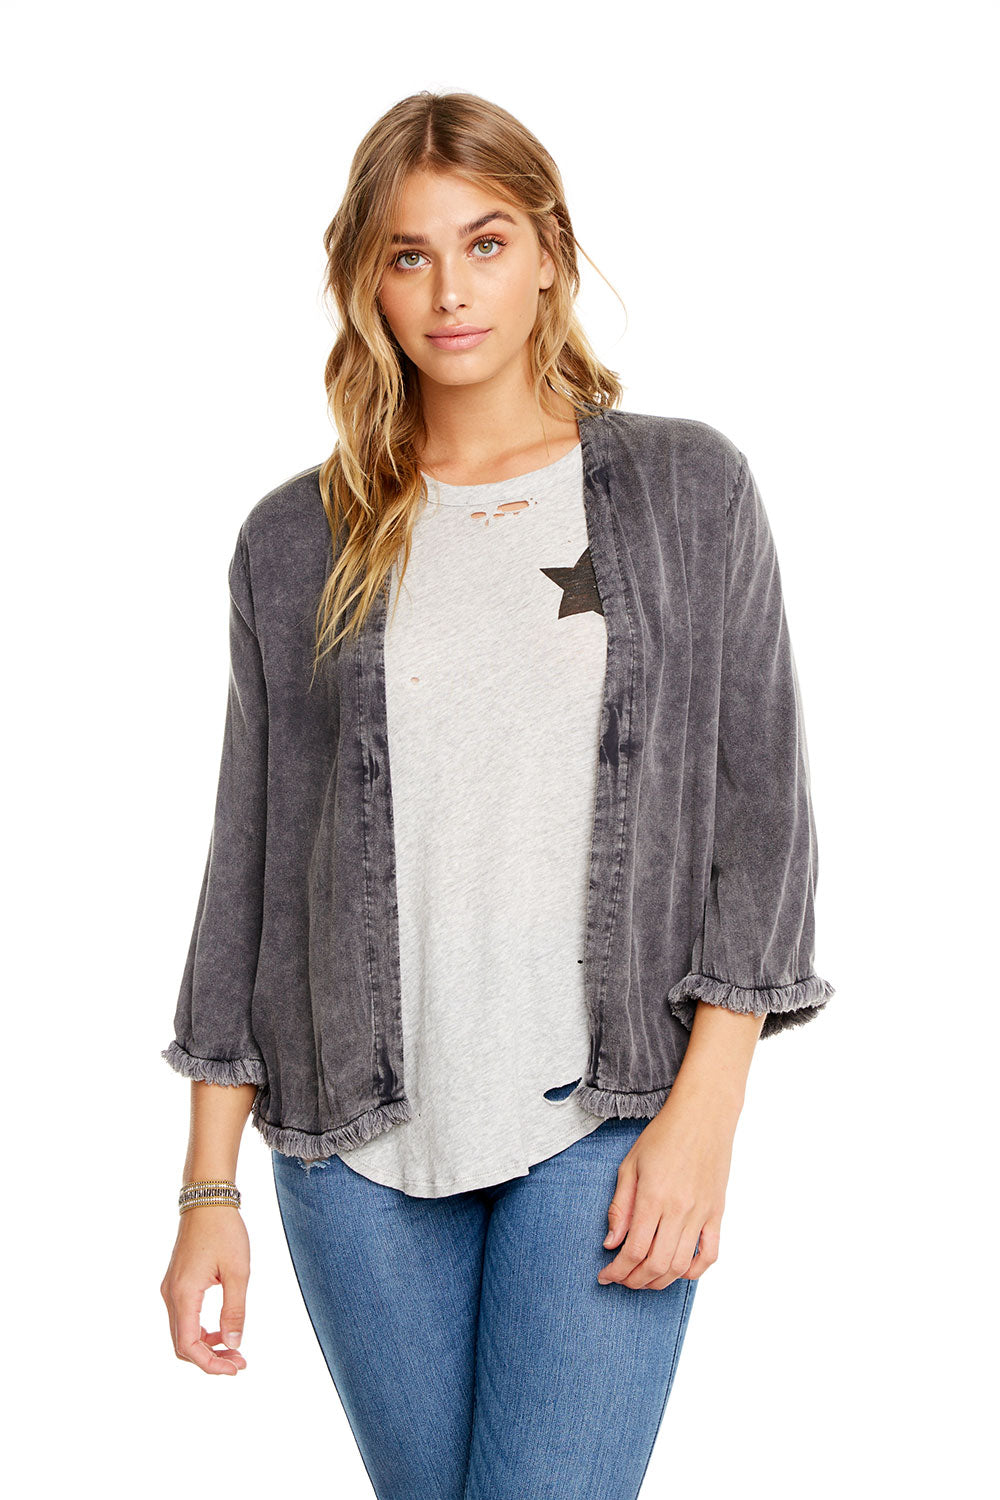 HEIRLOOM WOVENS SHRUNKEN KIMONO W/ FRAYED EDGE, WOMENS, chaserbrand.com,chaser clothing,chaser apparel,chaser los angeles